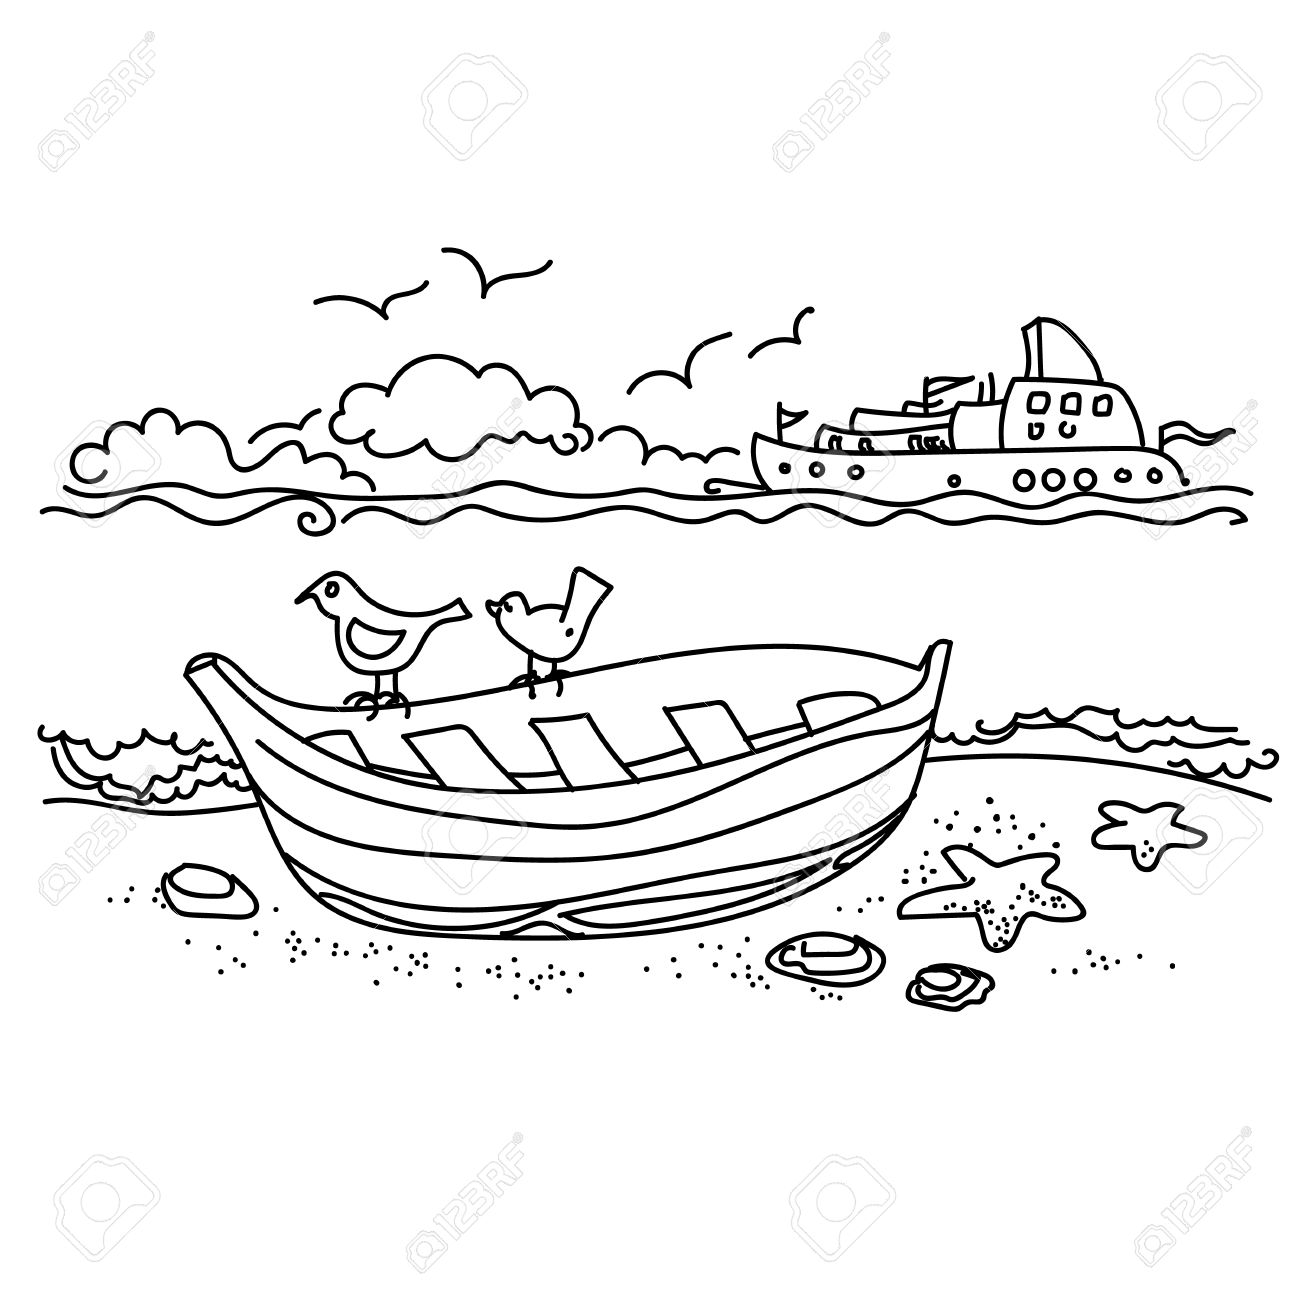 1300x1300 Sailing Boat On Coast Free Hand Drawing, Outline Royalty Free